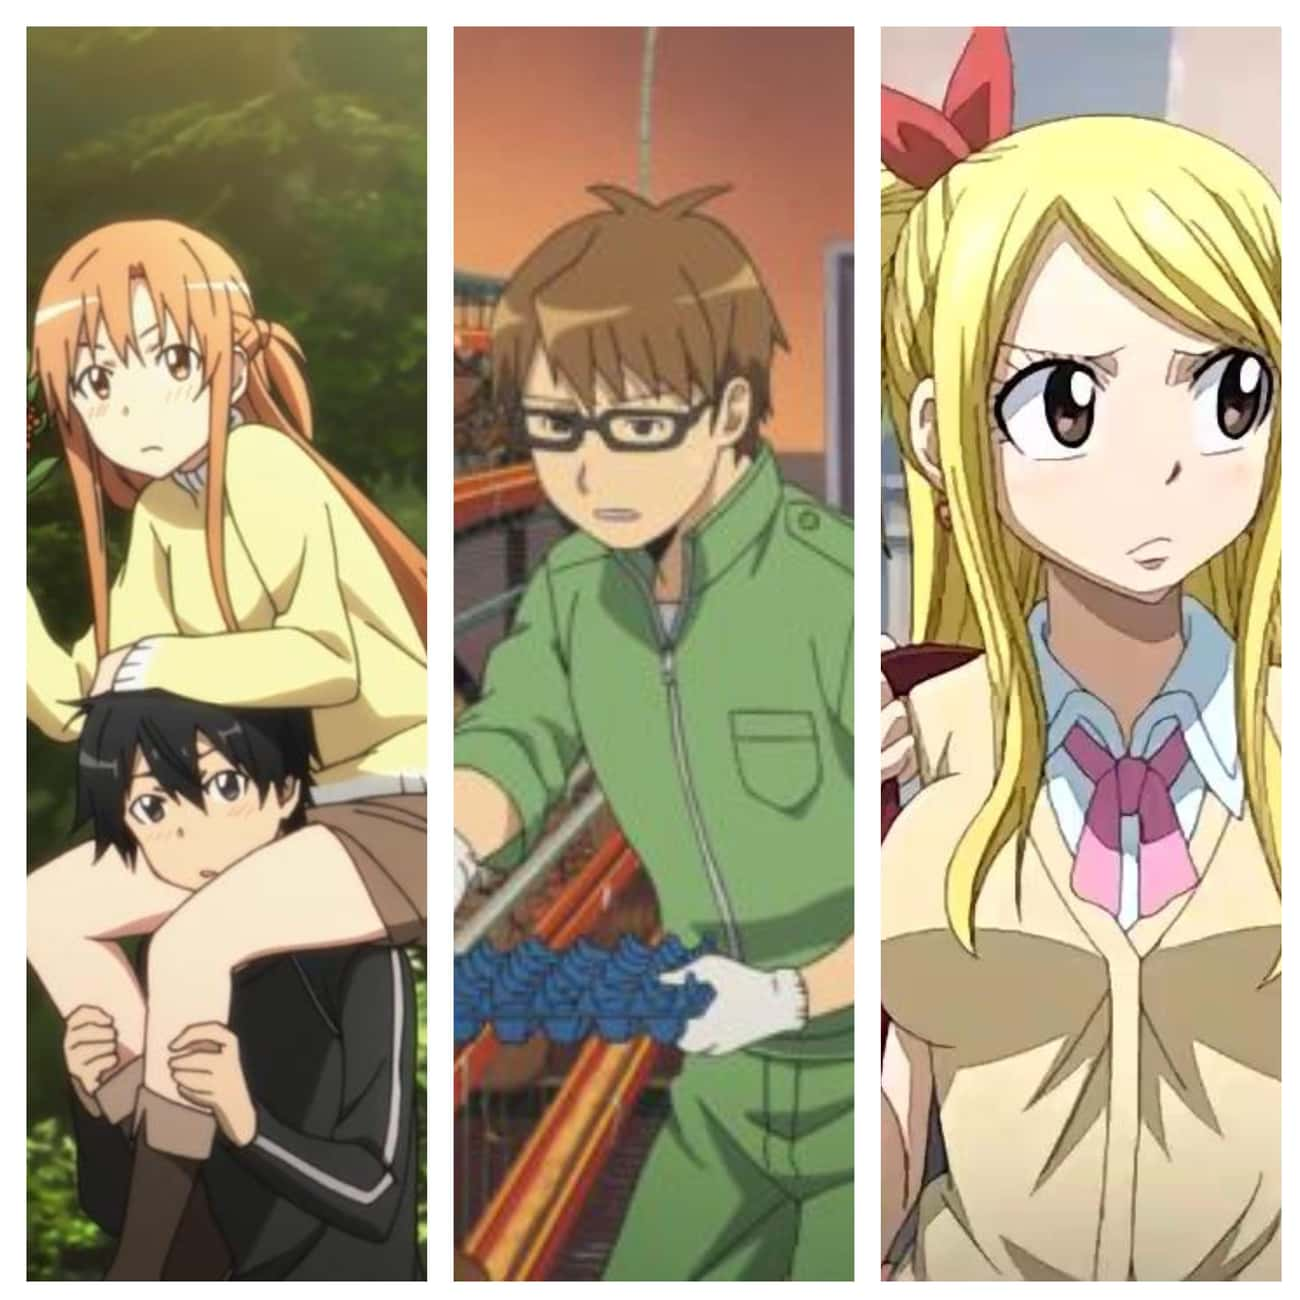 A-1 Pictures is listed (or ranked) 7 on the list The Greatest Anime Studios of All Time, Ranked